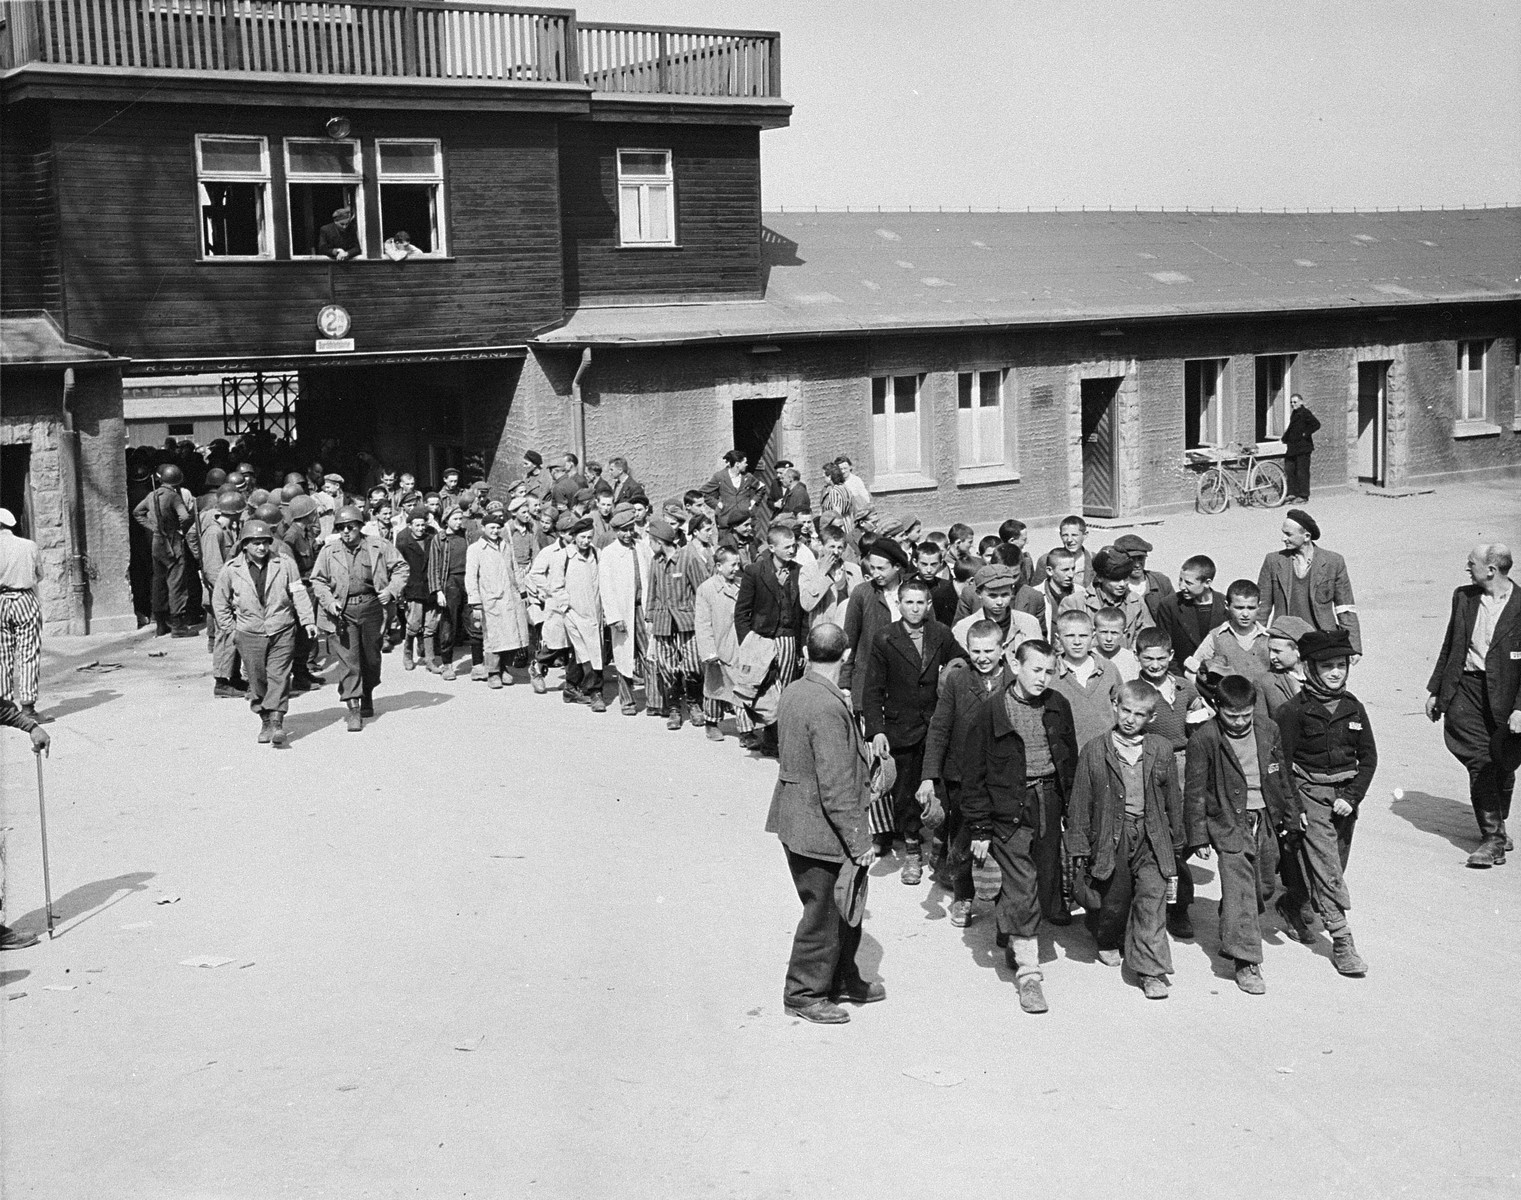 """Escorted by American soldiers, a transport of child survivors of Buchenwald file out of the main gate of the camp.  The original caption reads, """"Internees at the Buchenwald Concentration Camp near Weimar Germany march from the camp to receive treatment at an American hospital after the camp was captured by U.S. Third Army troops.""""  The boys are accompanied by American soldiers and directed by elements of the camp underground who watd over them, including Polish Jews Yakov Werber and Eli Grinbaum (on the right).   Among the children pictured are Izio Rosenman (head of column), Jacques Finkel, Charles Finkel, Fredek Margolis, Lalek Russ, Salek Sandowski, George Goldbloom and ? Zylber.  Misho Frailich, Willi Fogel, A. Grossman, Lotci Miller, Laiza Grynberg, Usha Grynberg, David Perlmutter, Marek Lodzinsky, Yankel Kapelush, Yosel Dziubak, Loyosh Hershkovitz, ? Yakubovitz, Reuven Wekselman, Stanley Weinstein, Herschek Zeit, Henryk Kolber, Jacques Werber and Philip Kaner.  Mor Stern is the boy in the beret and white coat, with right arm hanging down straight just right of the two American soldiers."""